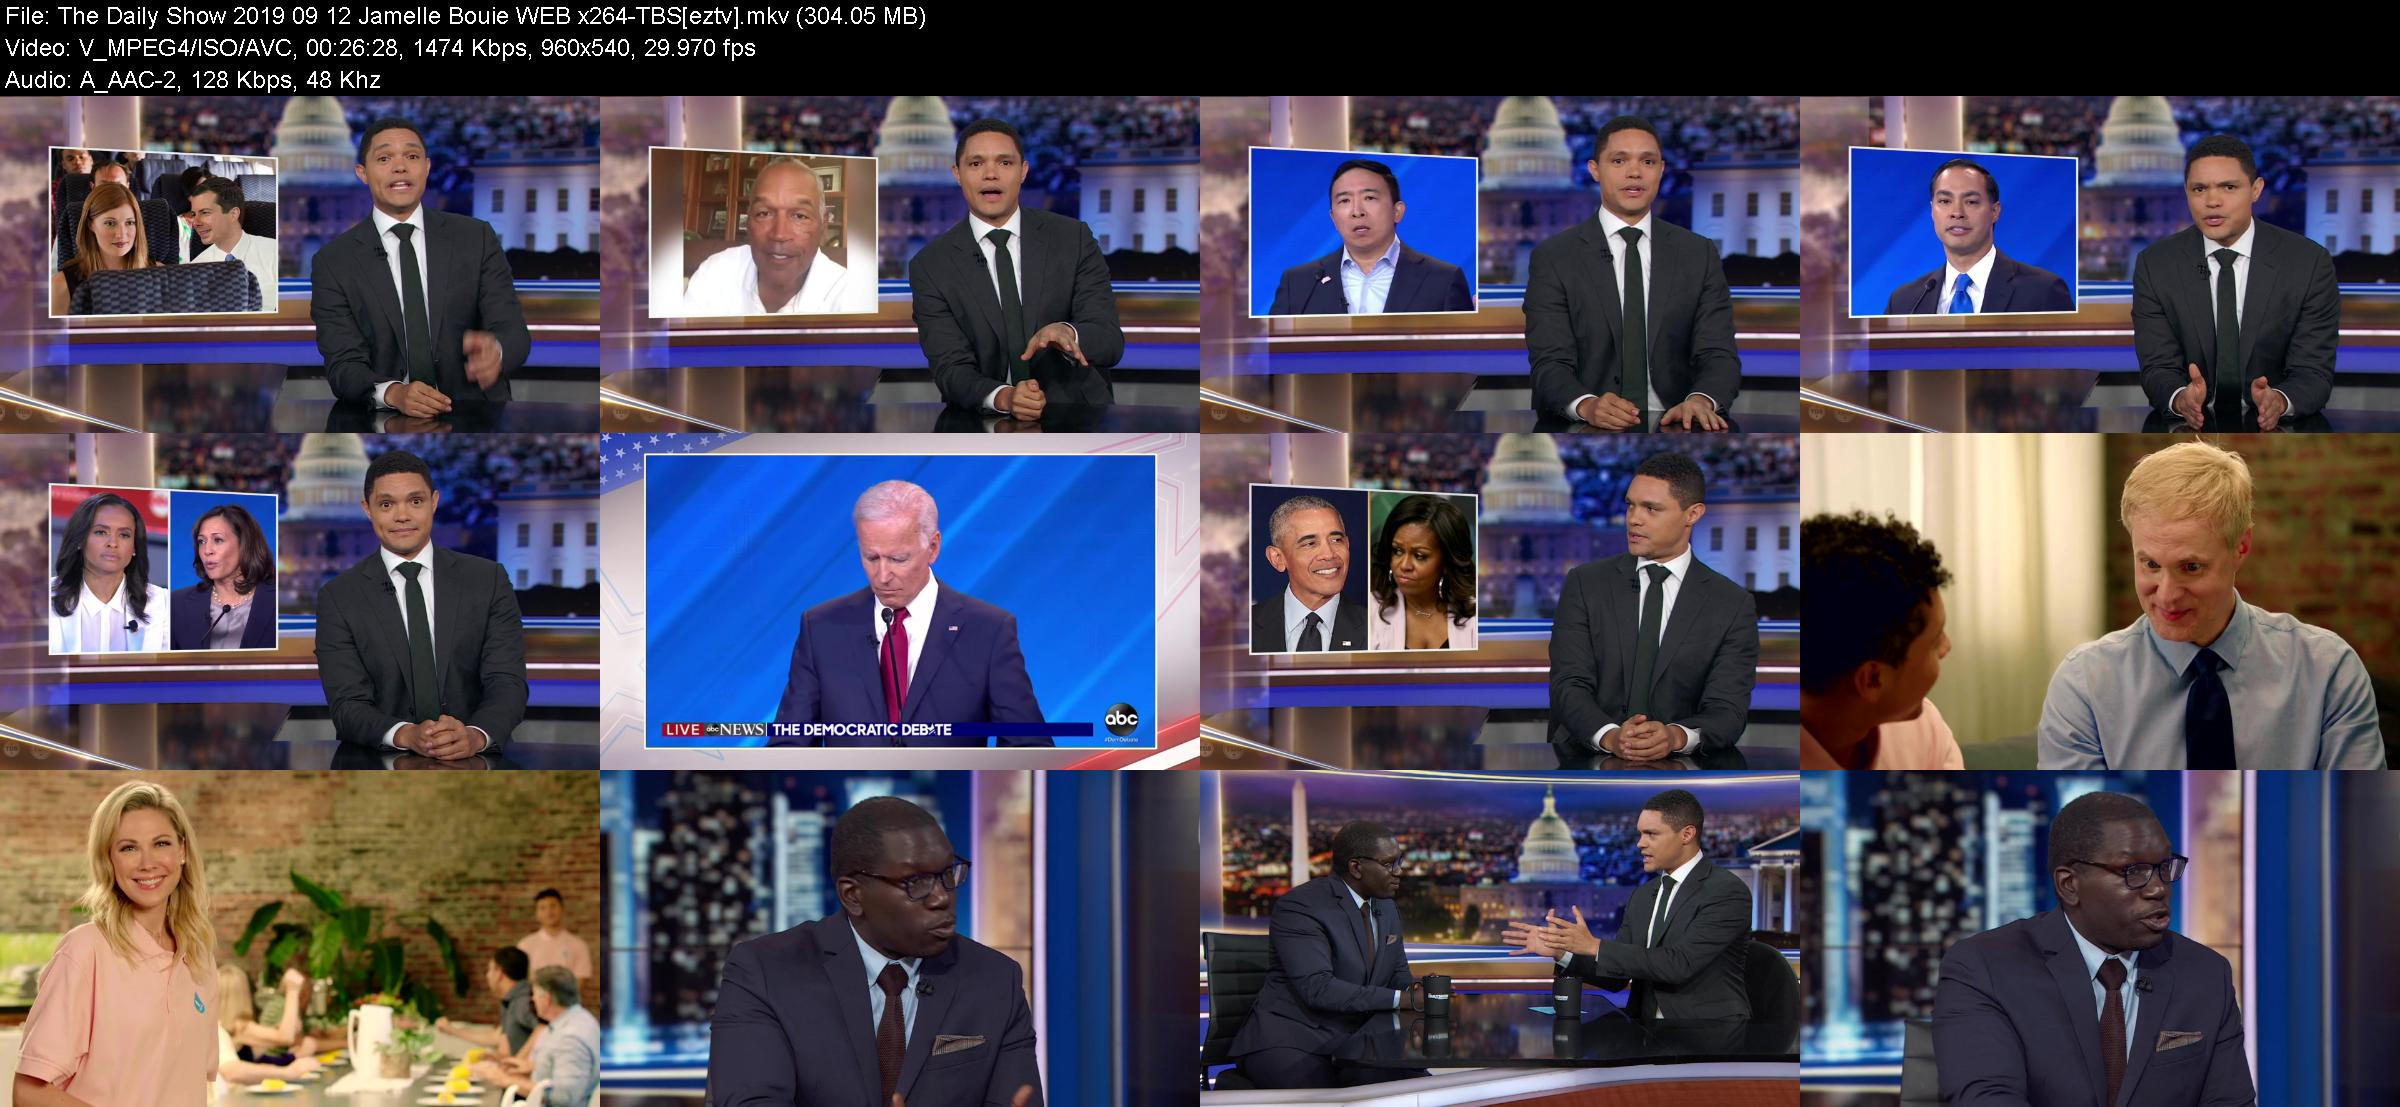 The Daily Show 2019 09 12 Jamelle Bouie WEB x264-TBS